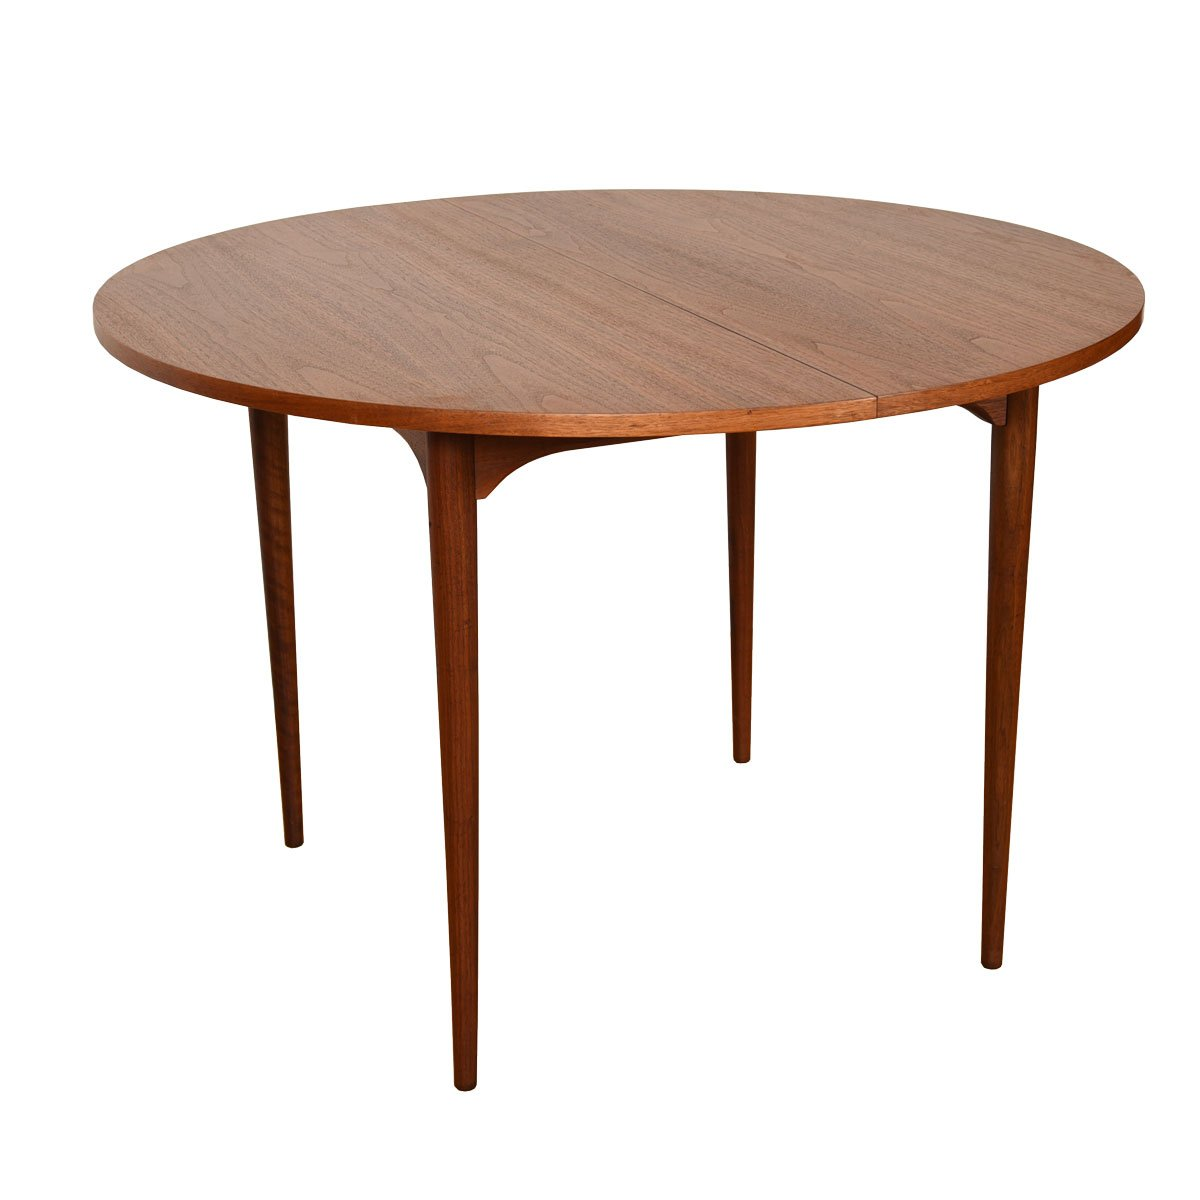 Brown Saltman Petite 42″ Round-to-Oval Walnut Dining Table w/ 2 Leaves